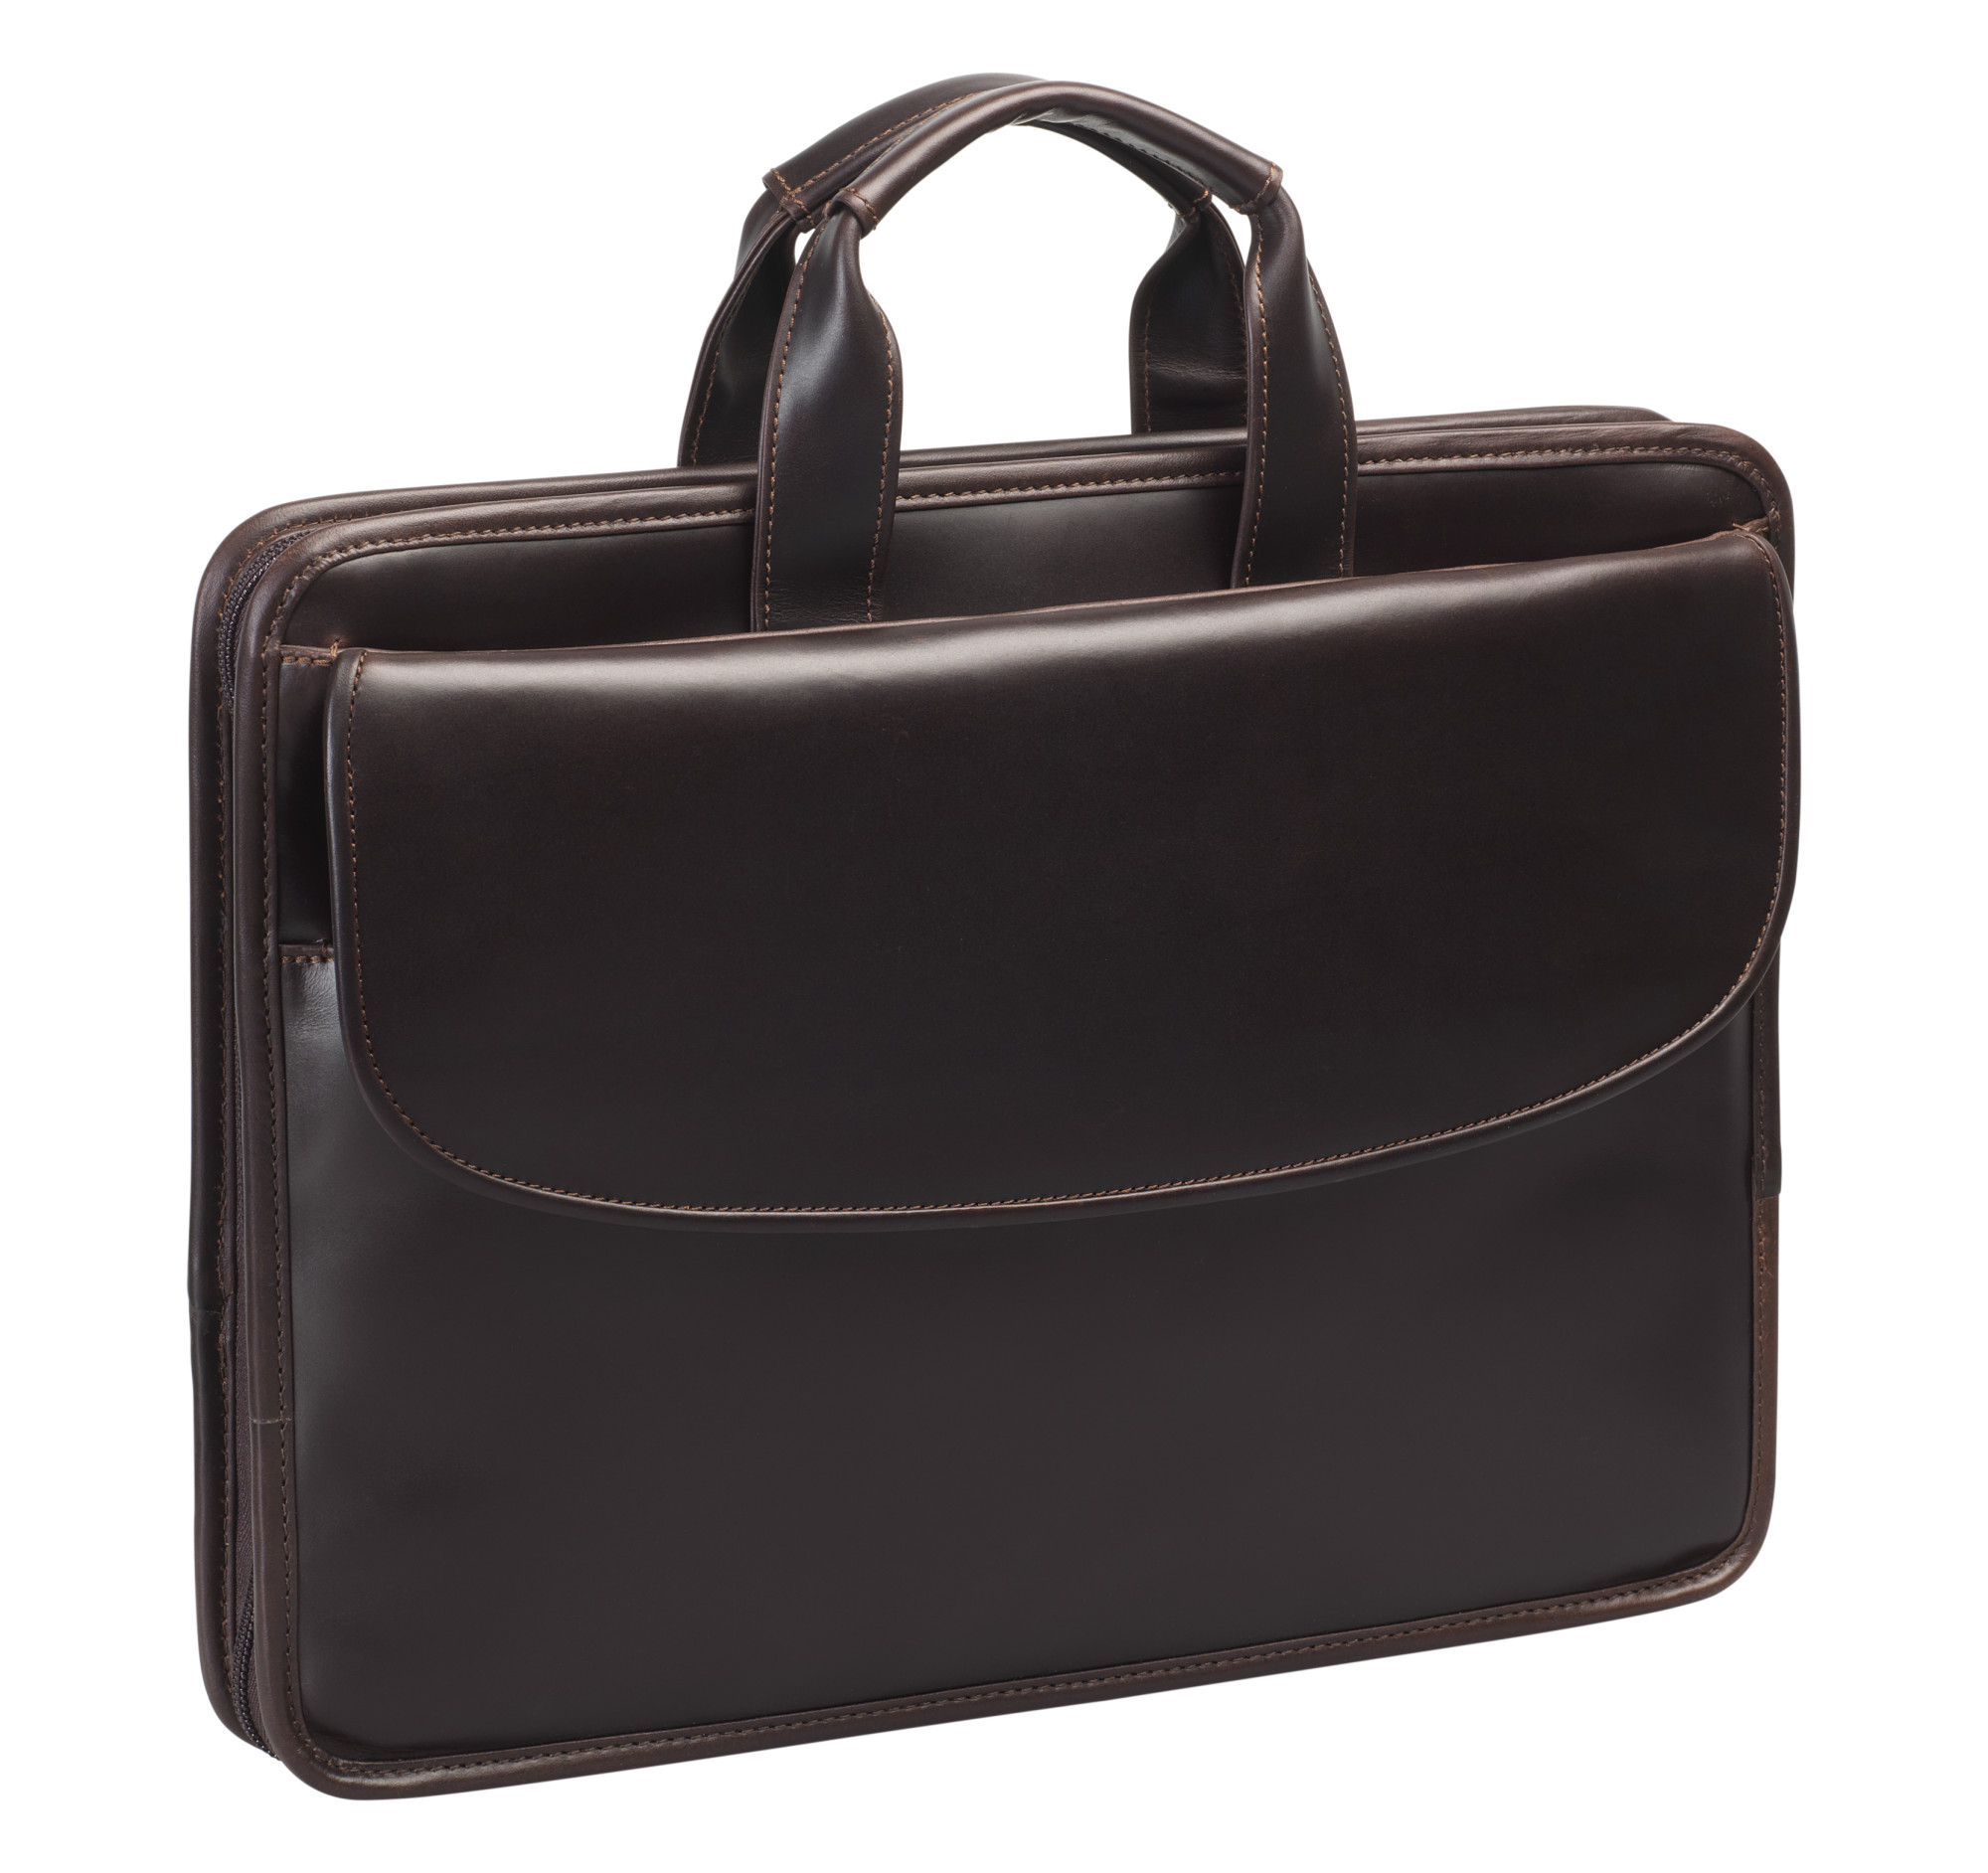 johnston and murphy briefcase photo - 1